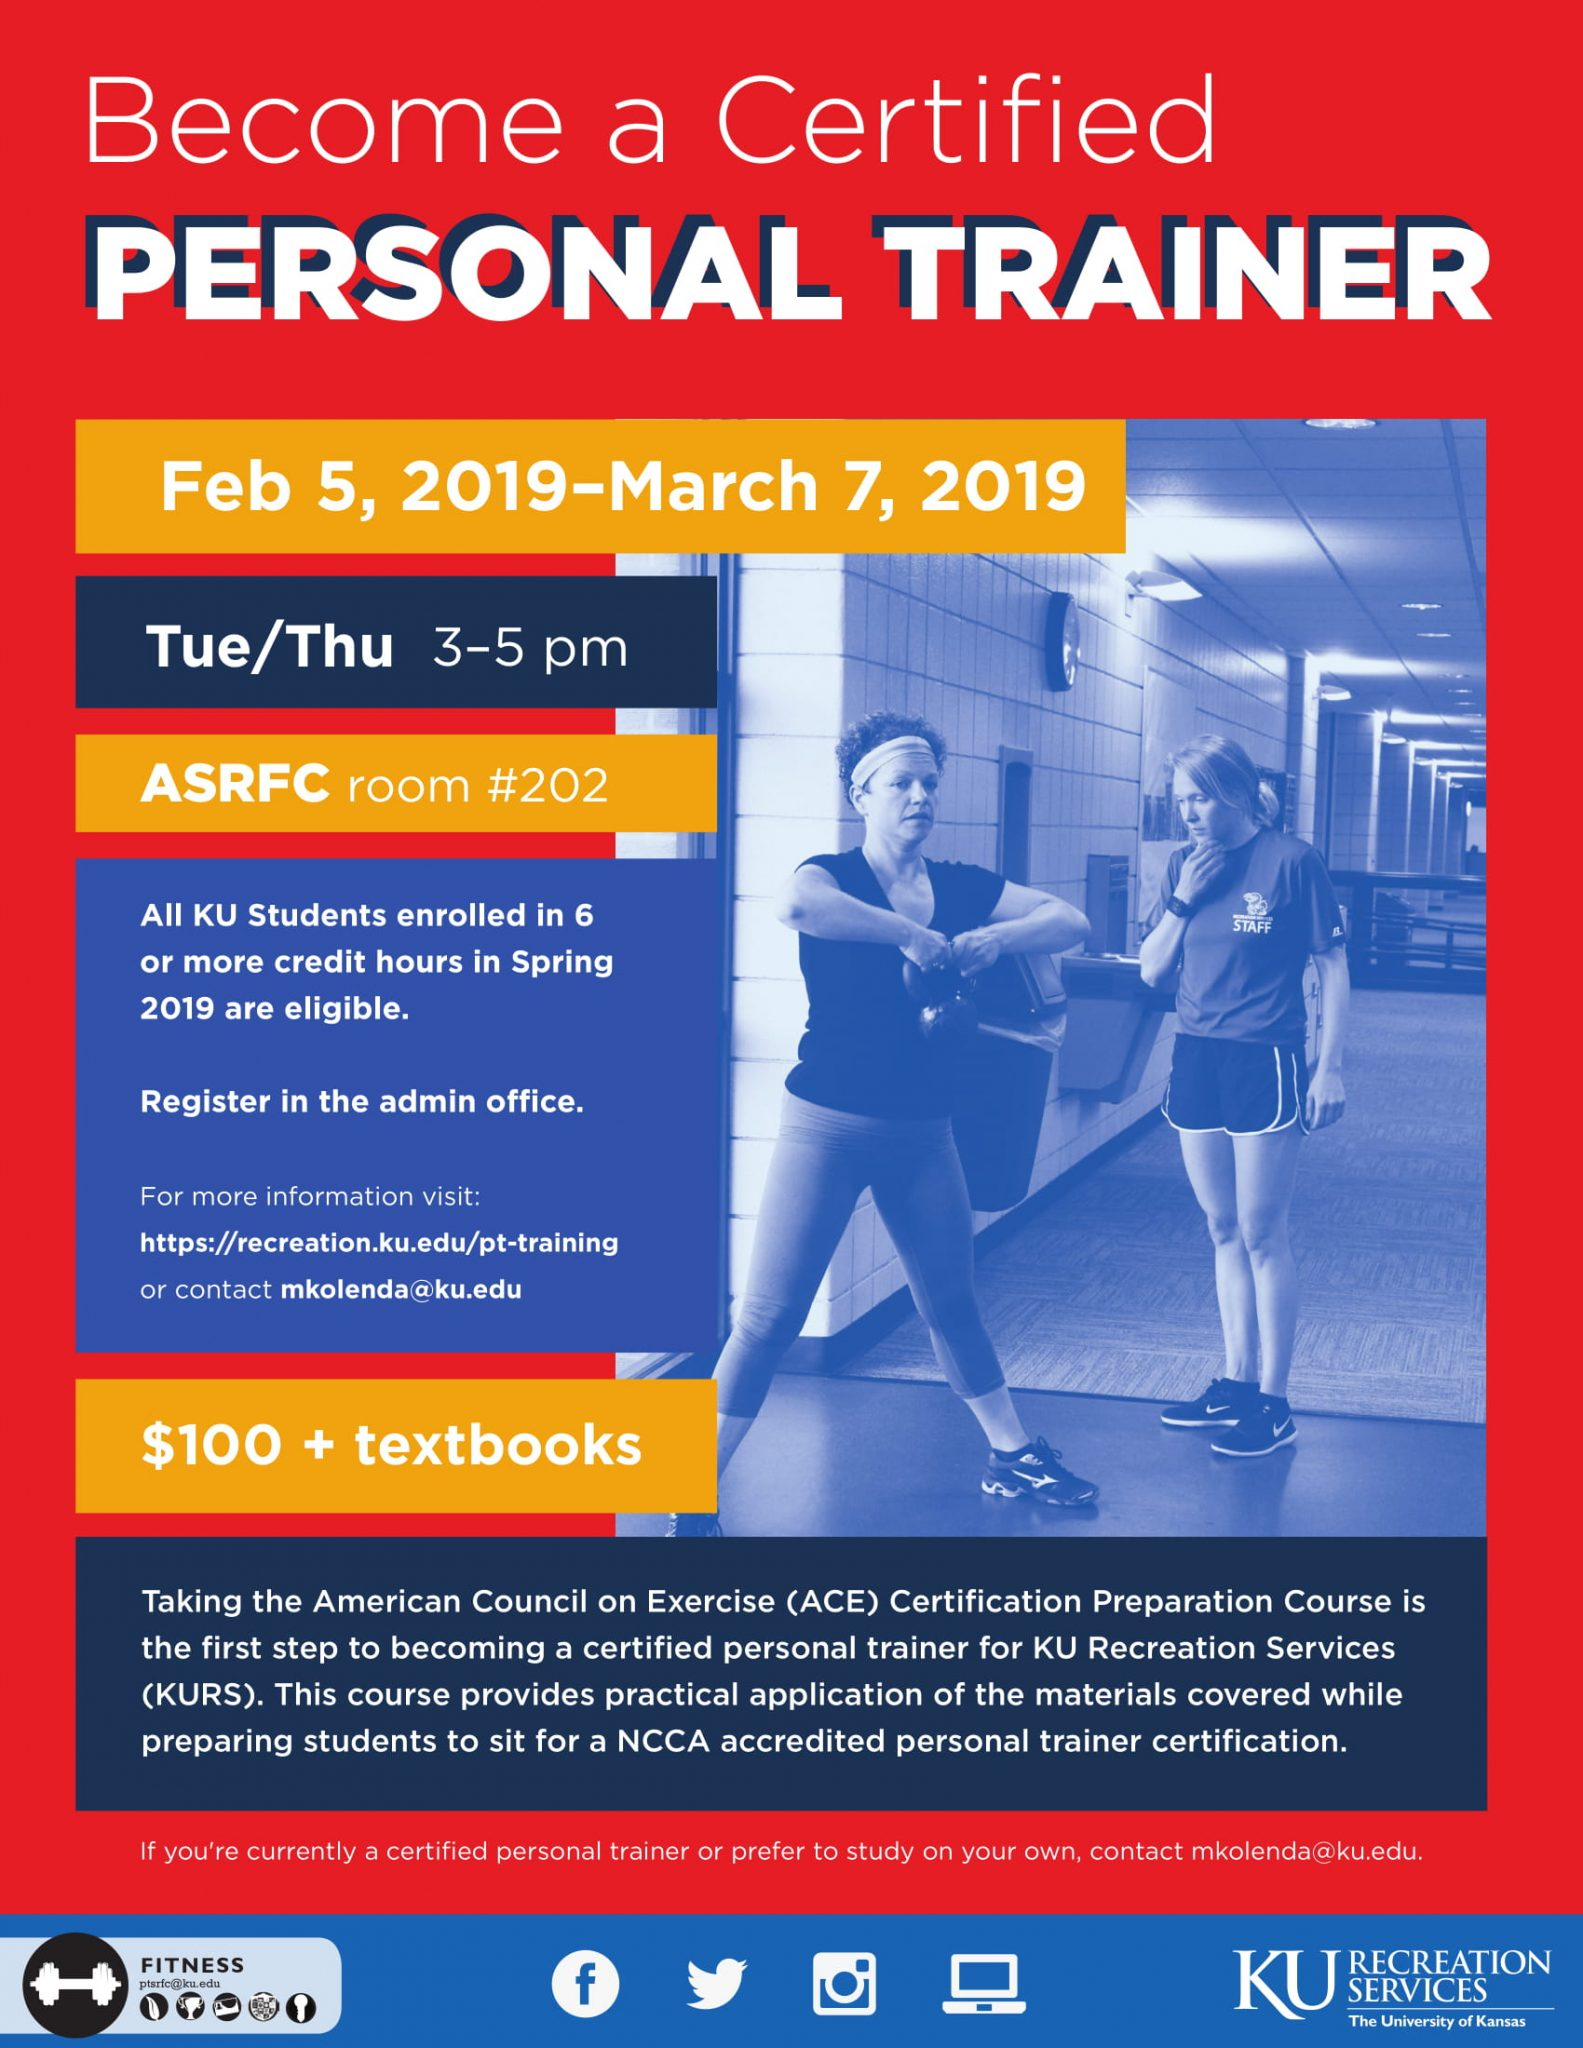 Updates to the ACE Personal Training Prep Course